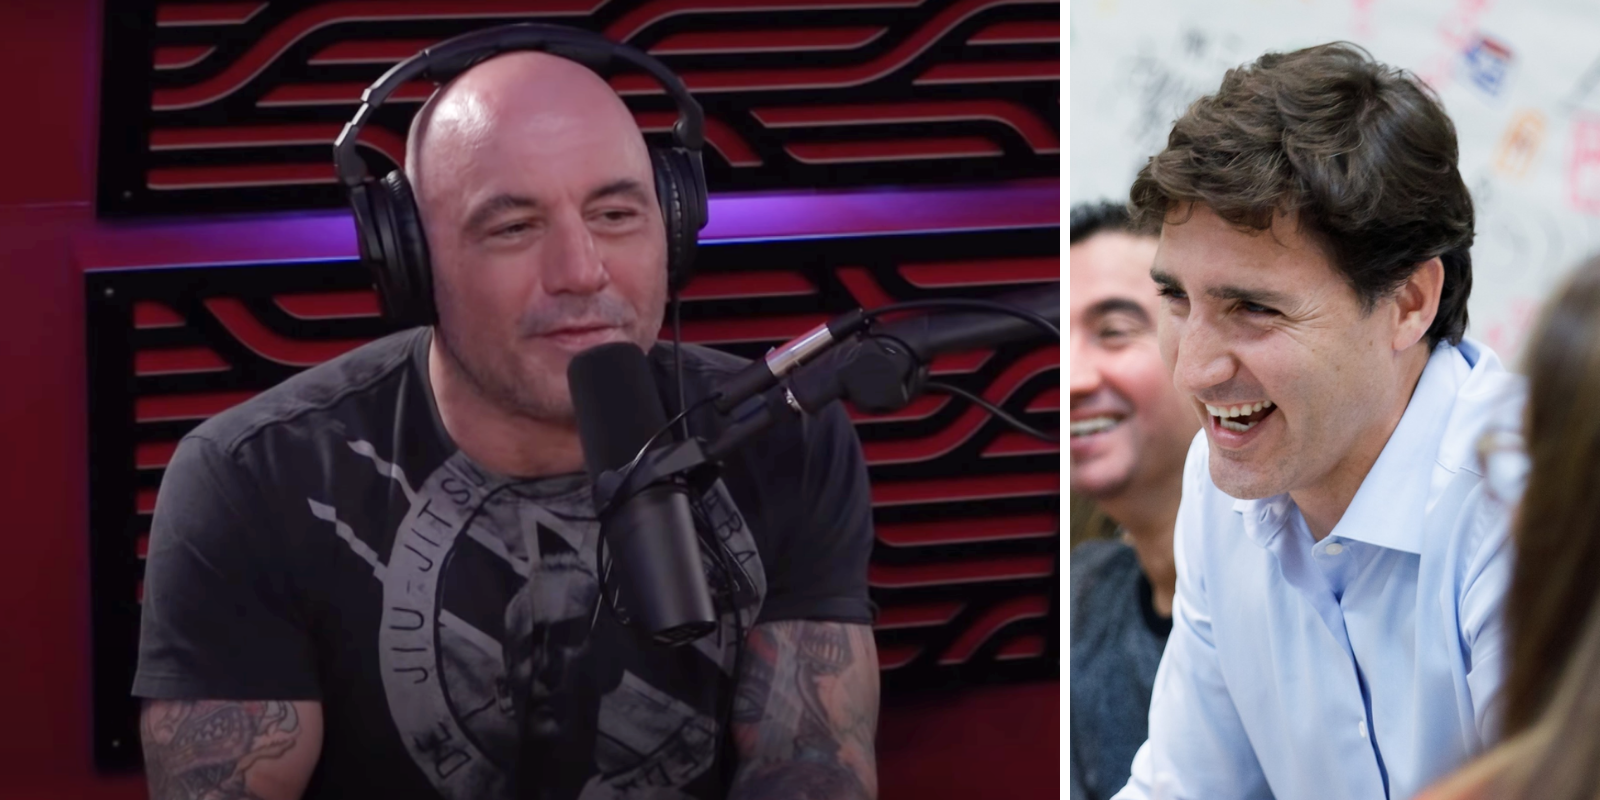 WATCH: Joe Rogan calls Justin Trudeau a 'p*ssy' who did 'blackface thirty or forty times'